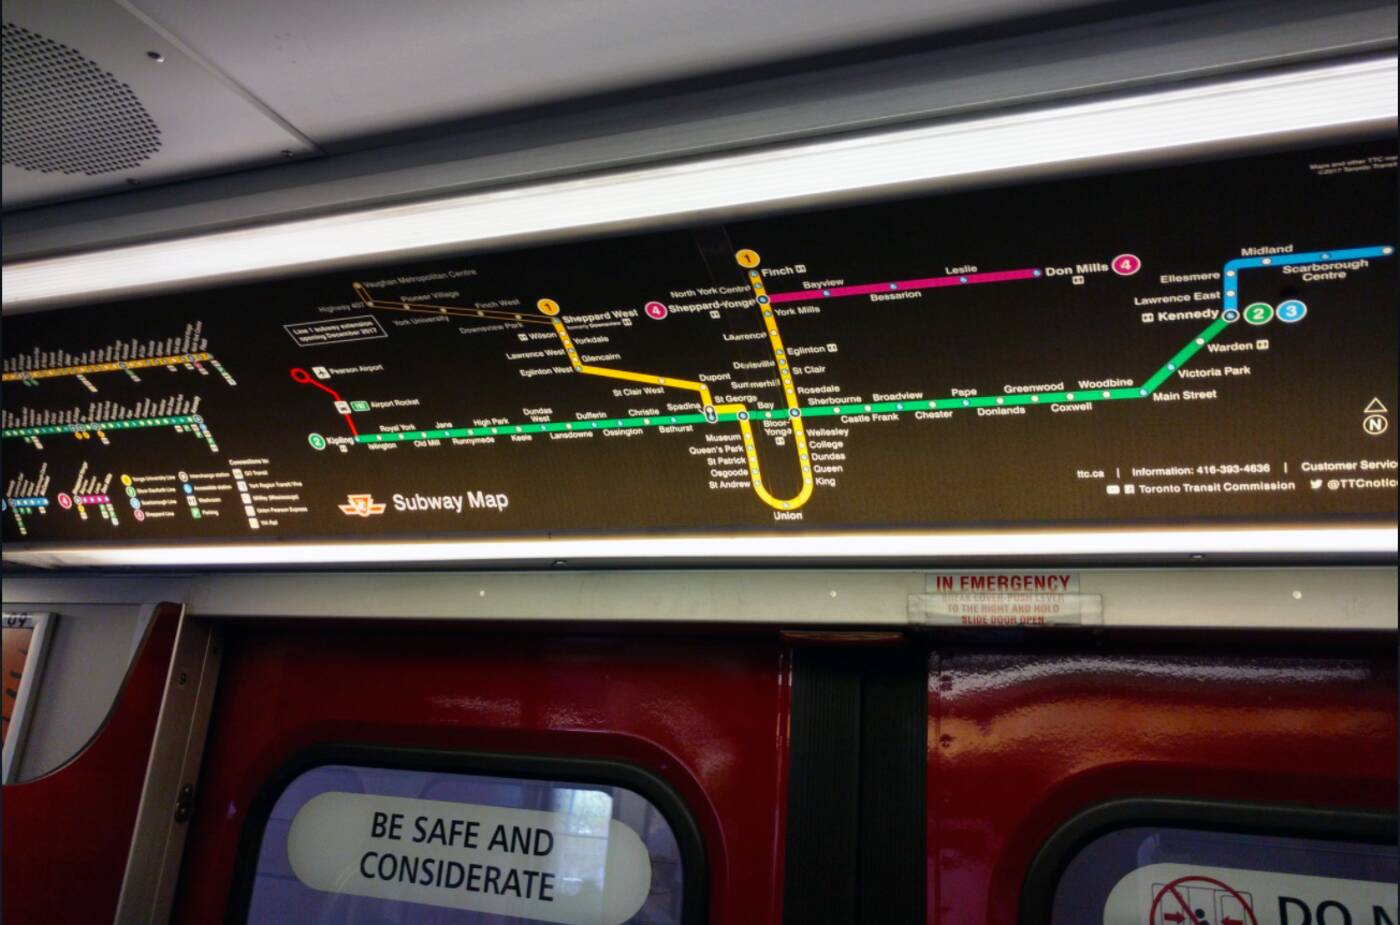 New York Subway Map Redesign.The Ttc Just Redesigned The Subway Map